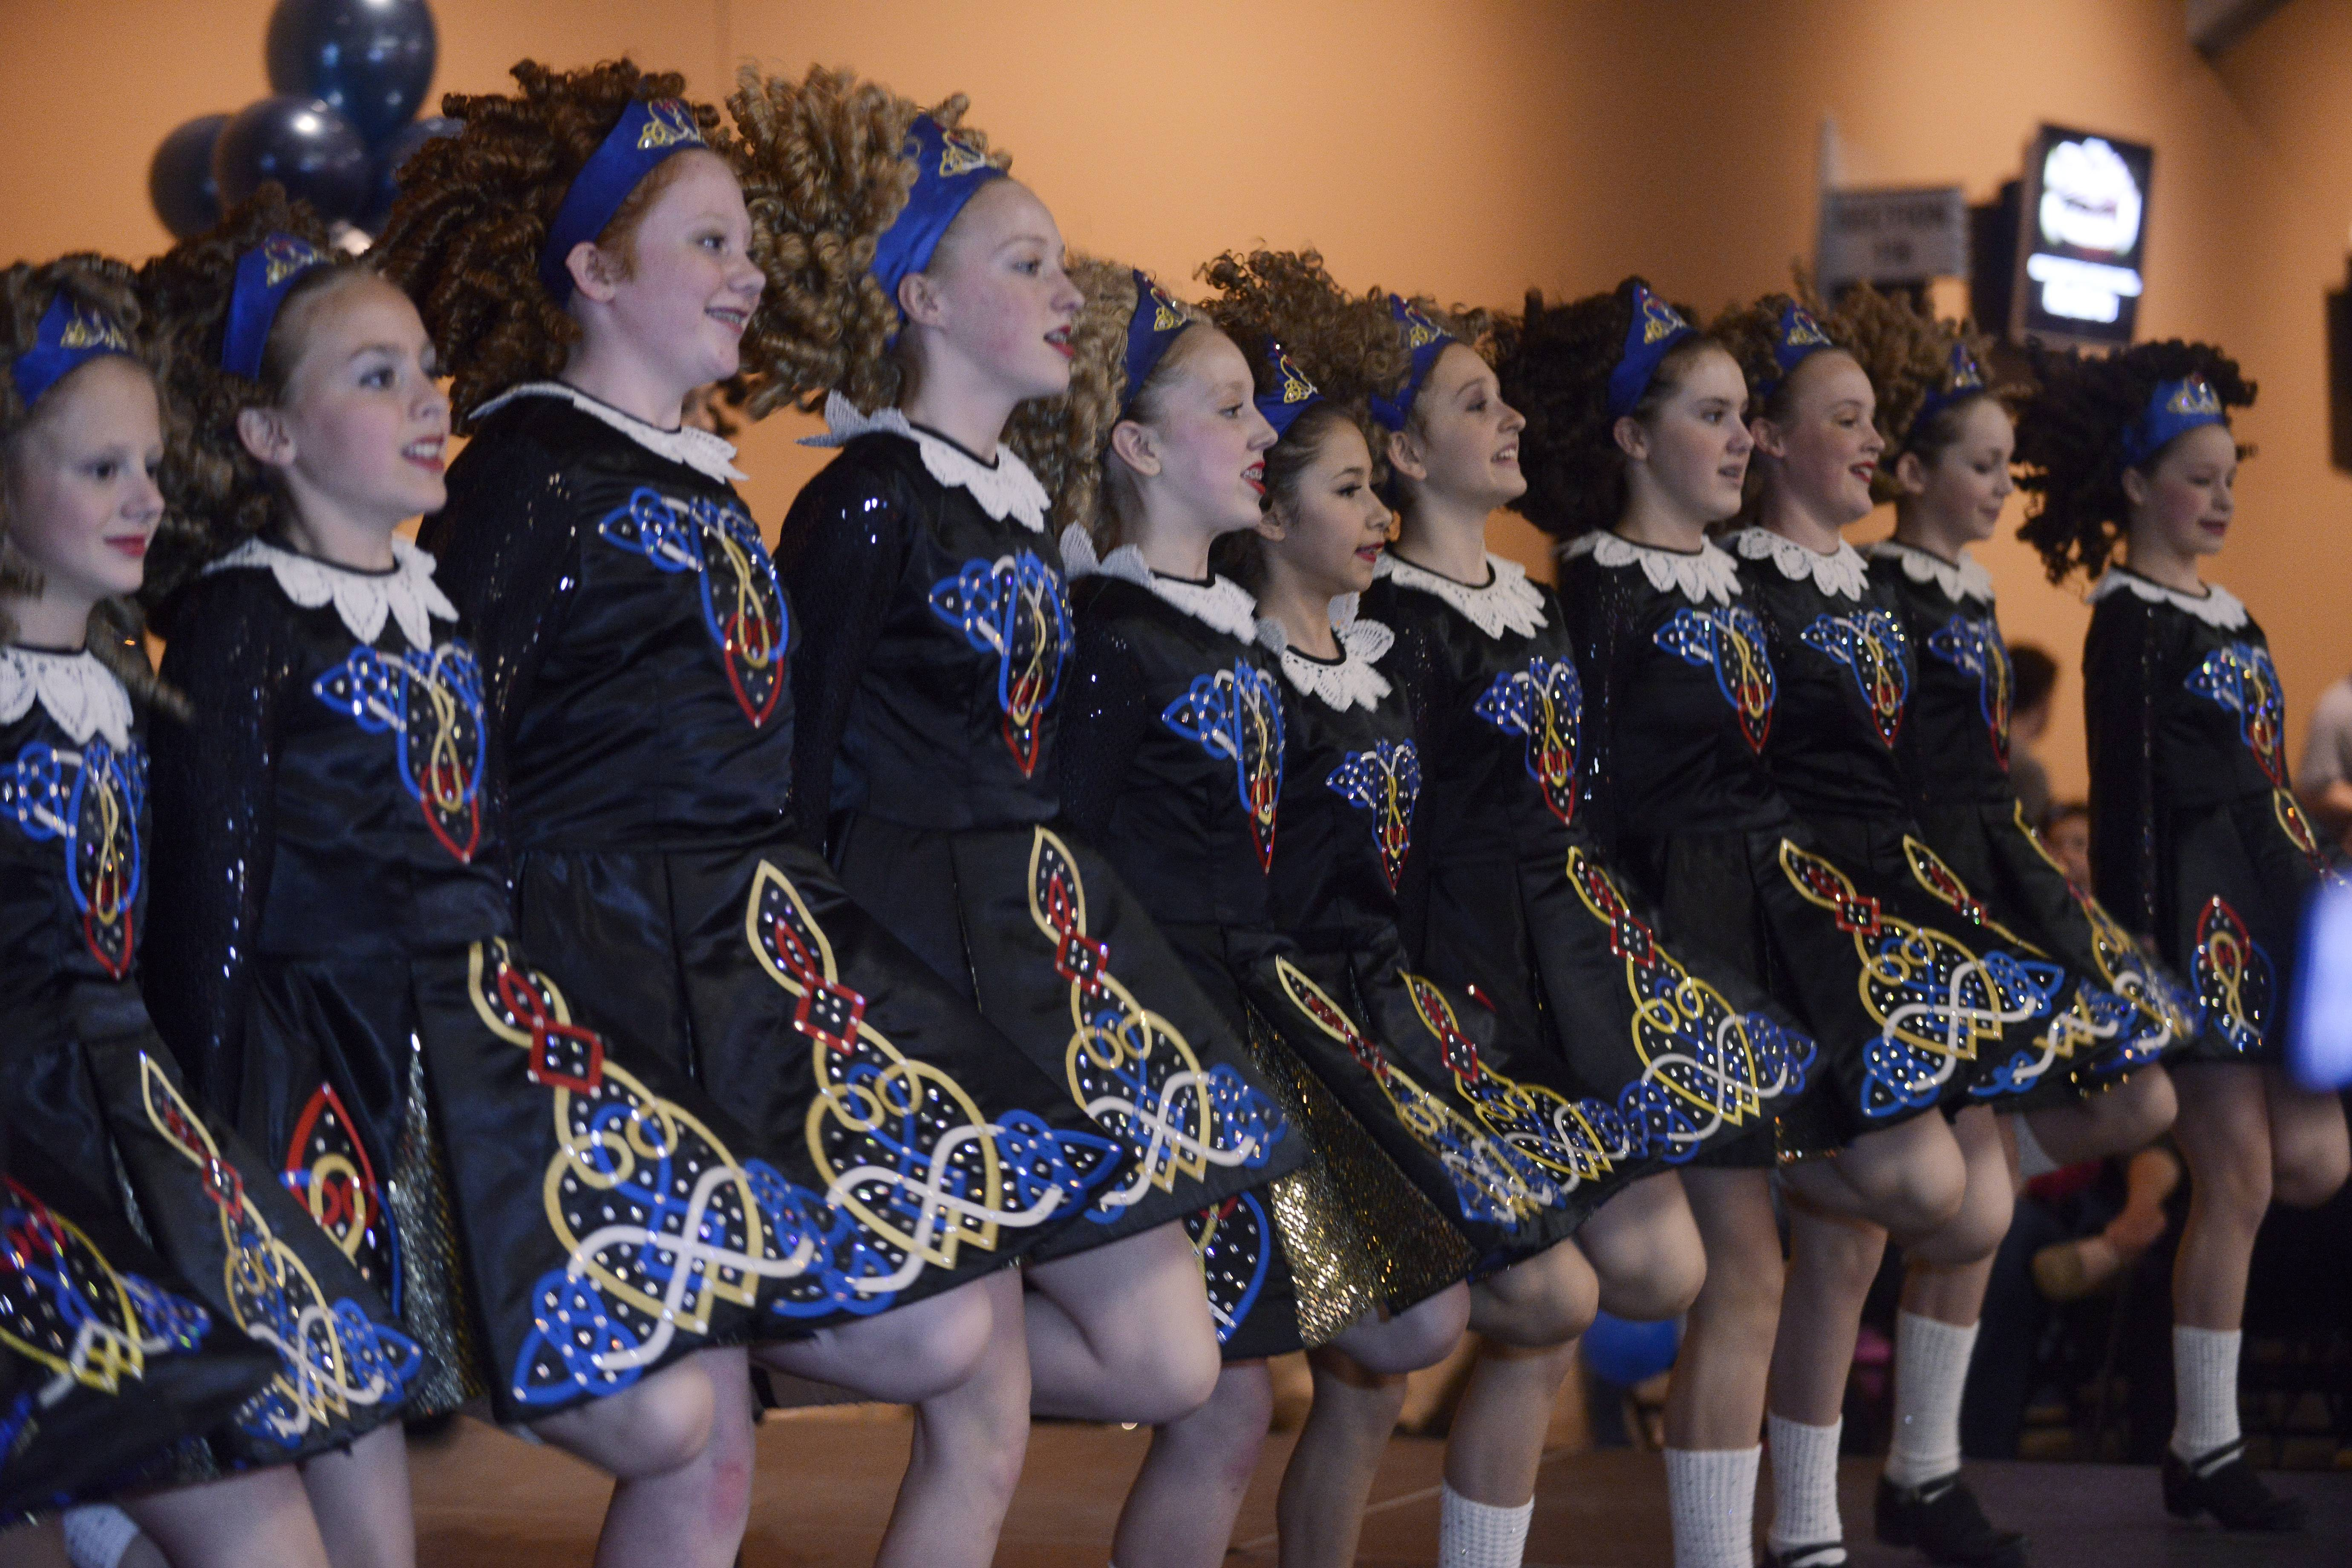 JOE LEWNARD/jlewnard@dailyherald.com, 2013The Rebecca McCarthy Irish Dancers perform during the 2013 Northwest Celtic Fest at the Sears Centre in Hoffman Estates. the Algonquin-based troupe returns Saturday when the 6th annual edition of the festival is held.